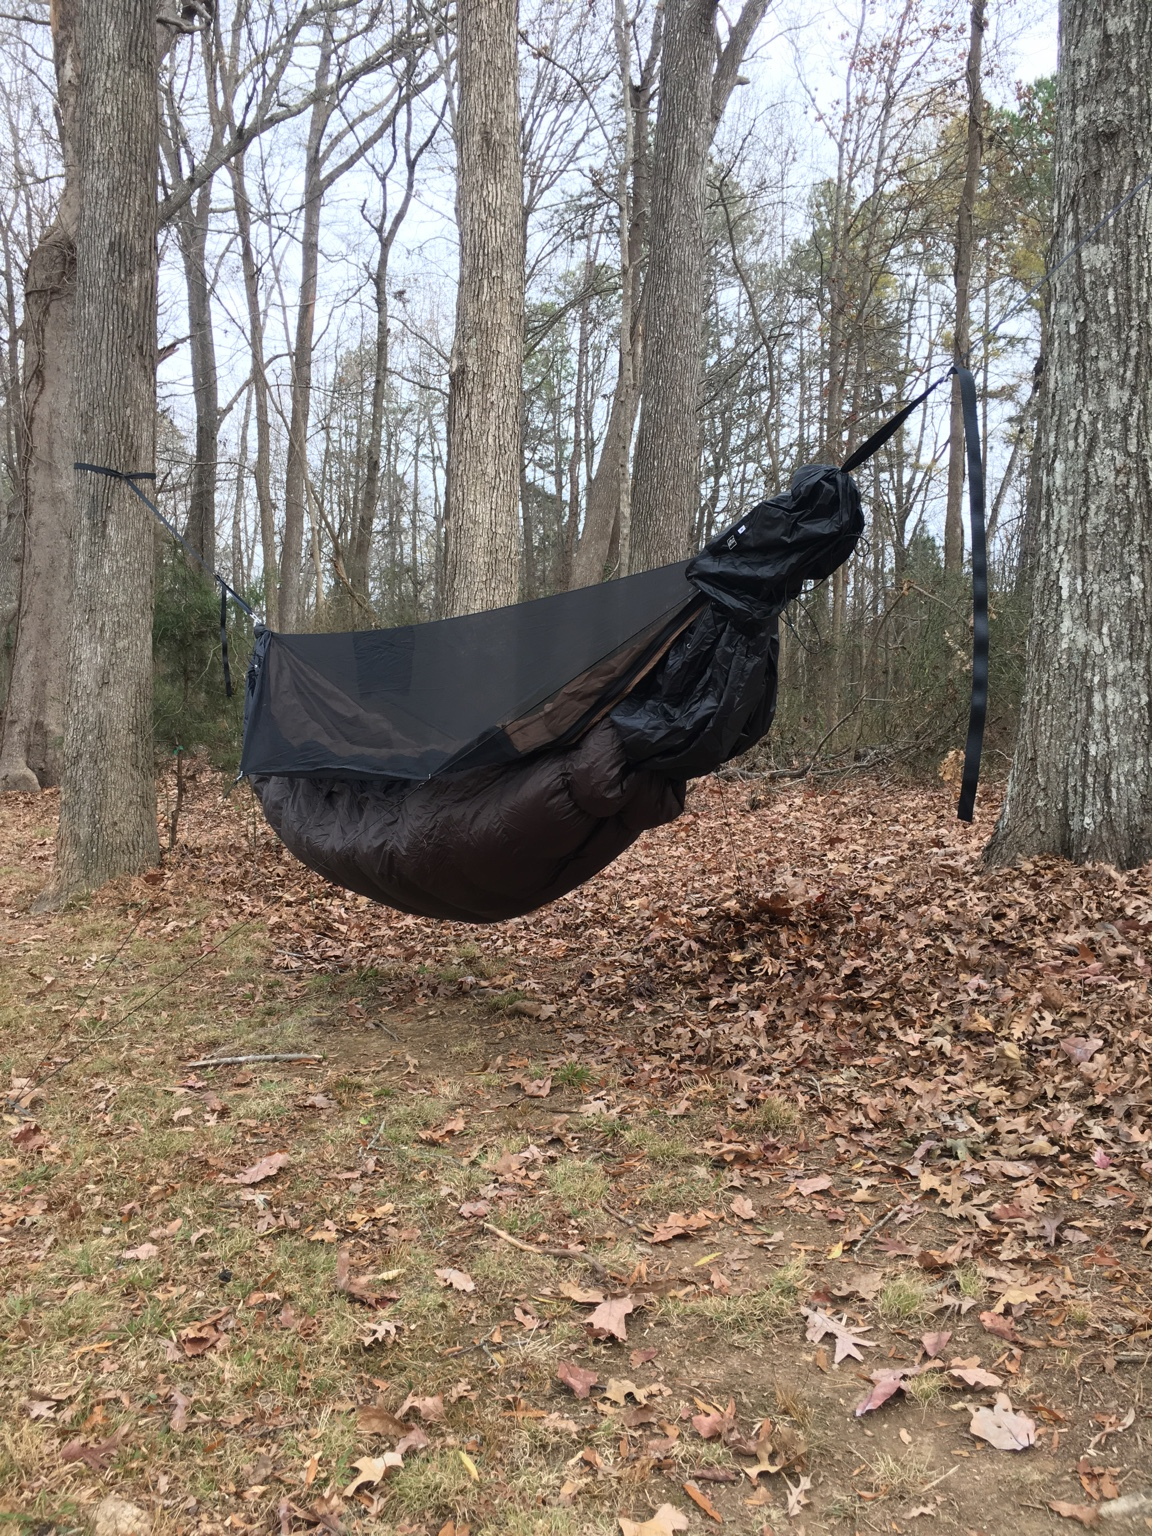 to my knowledge it u0027s the only insulated hammock that you can vent  here are some pictures i u0027m looking forward to trying it out on some overnights  sheltowee boone zip 20  rh   hammockforums